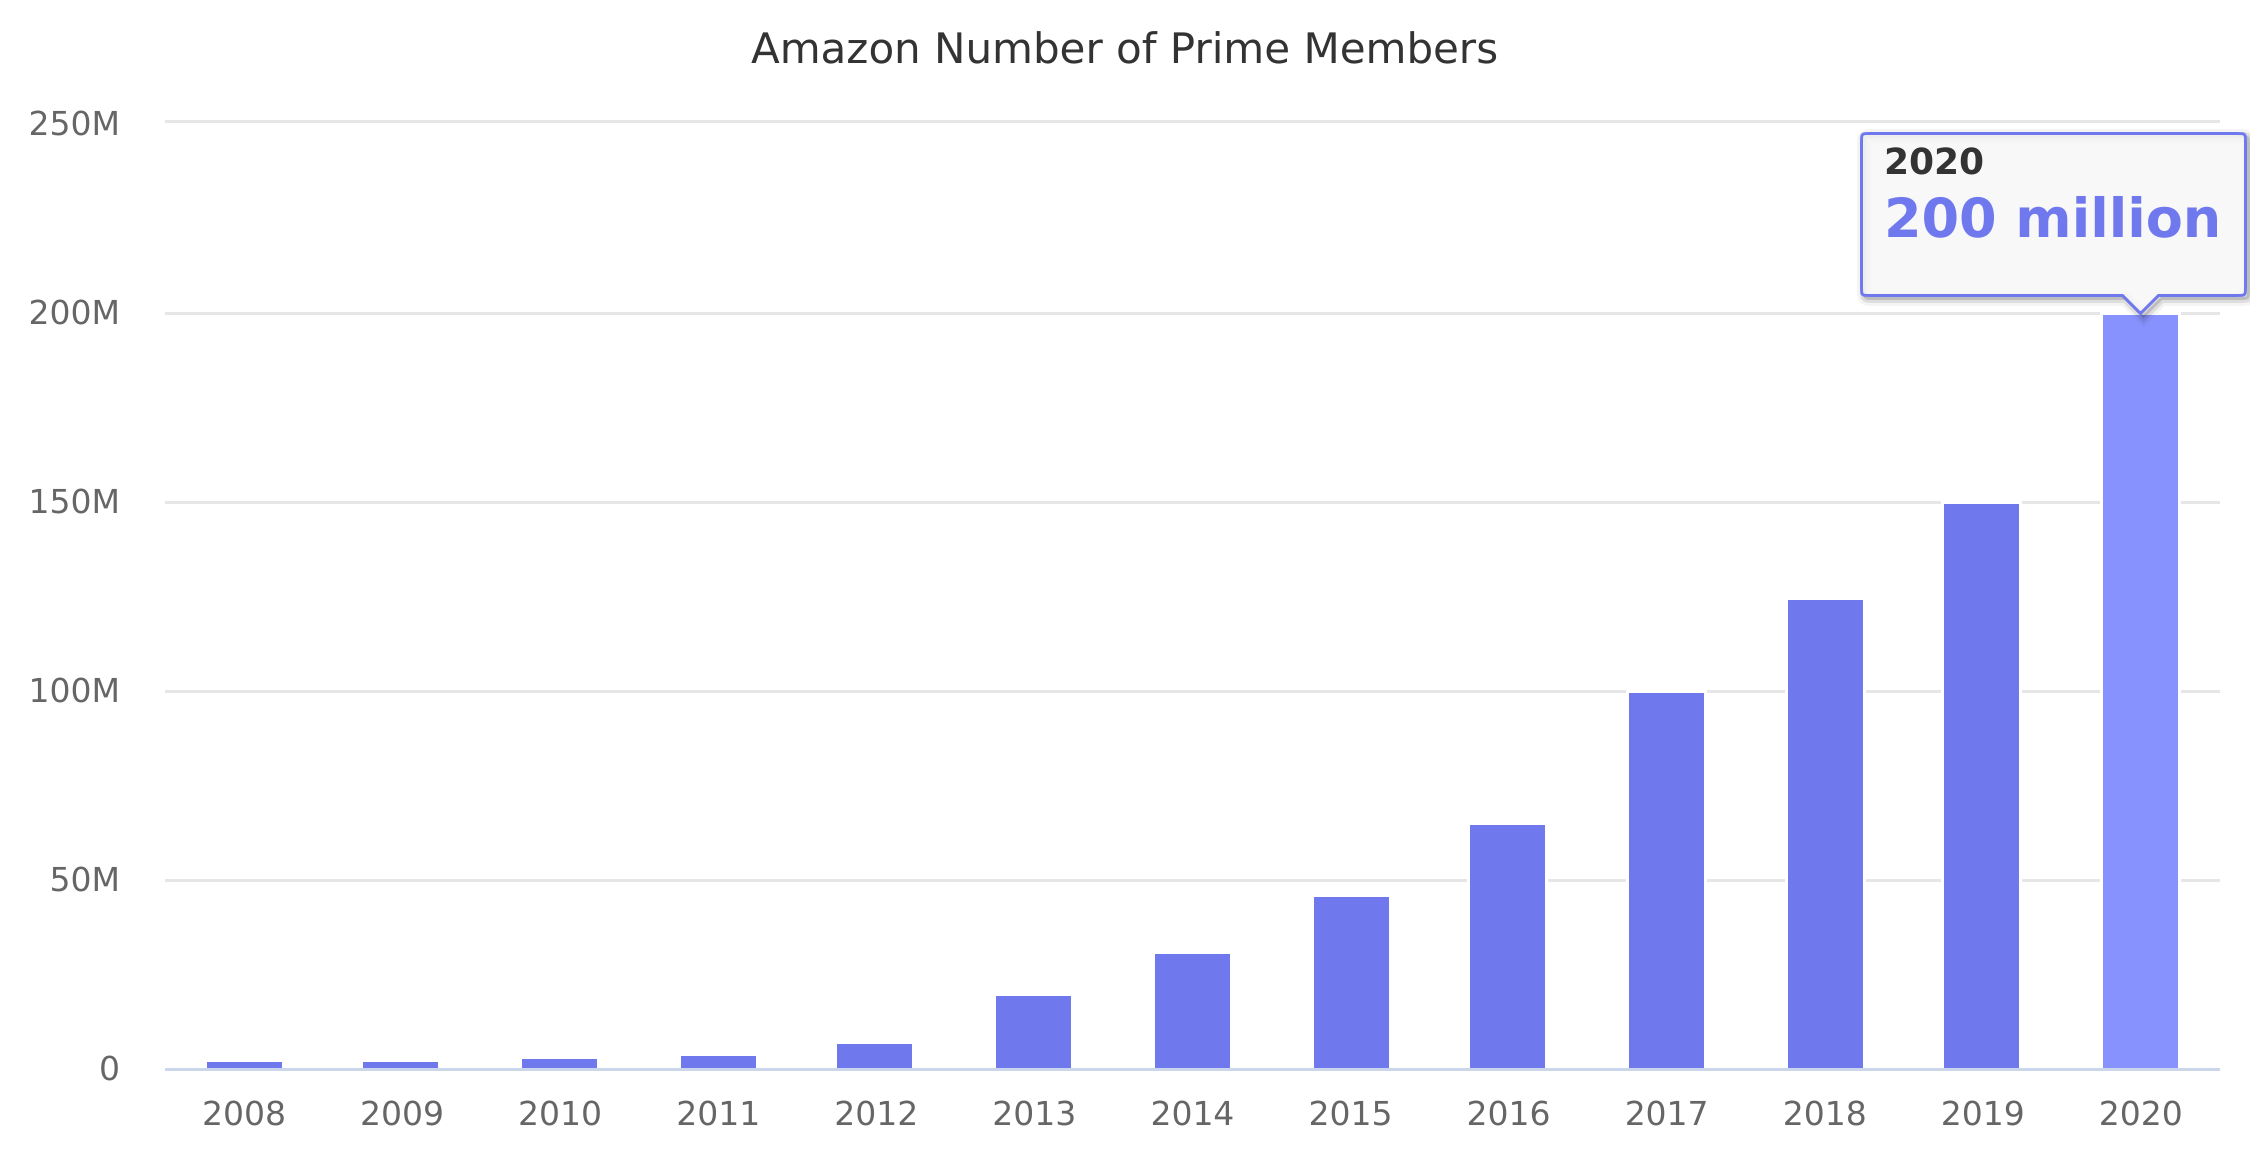 Amazon Number of Prime Members 2008-2017